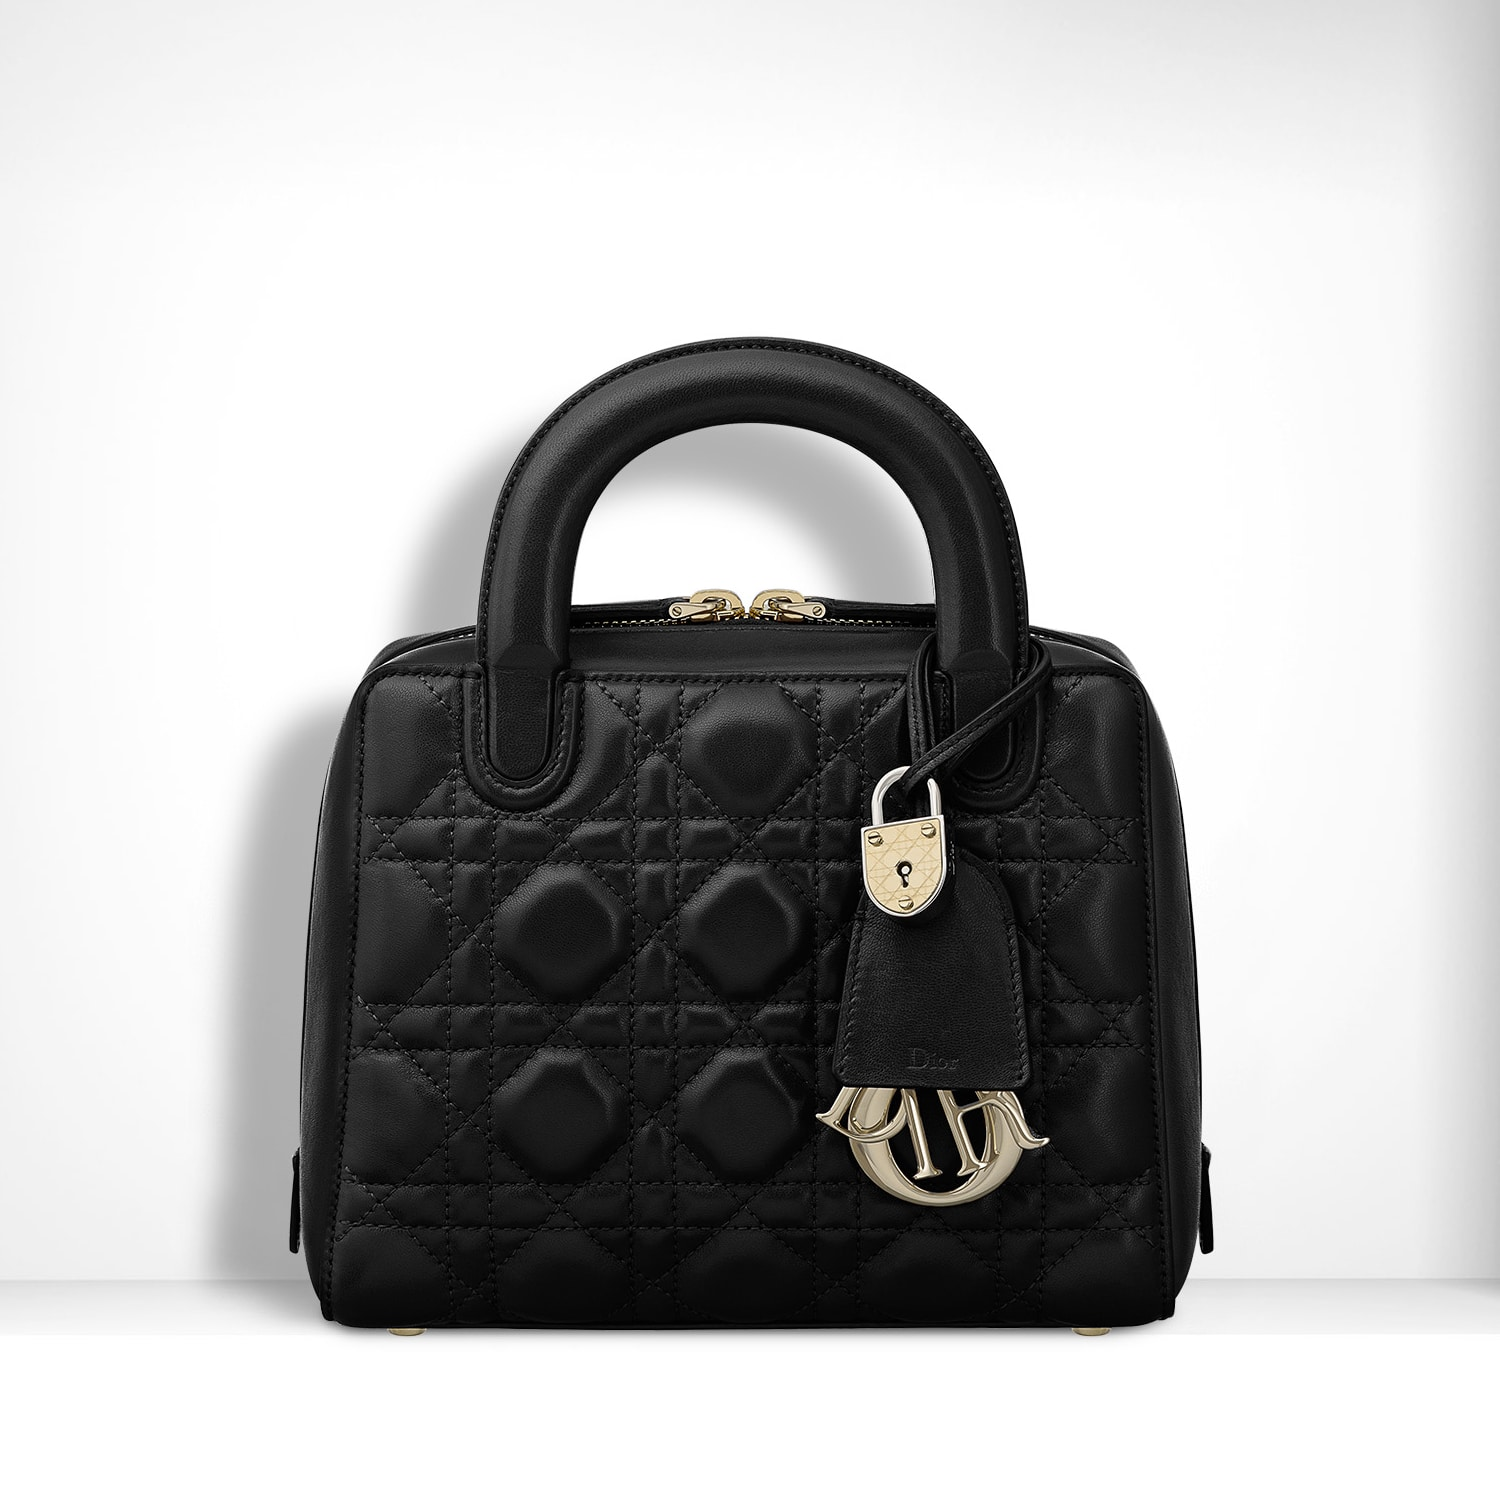 Dior Lily Bag Reference Guide  10dea41da3826